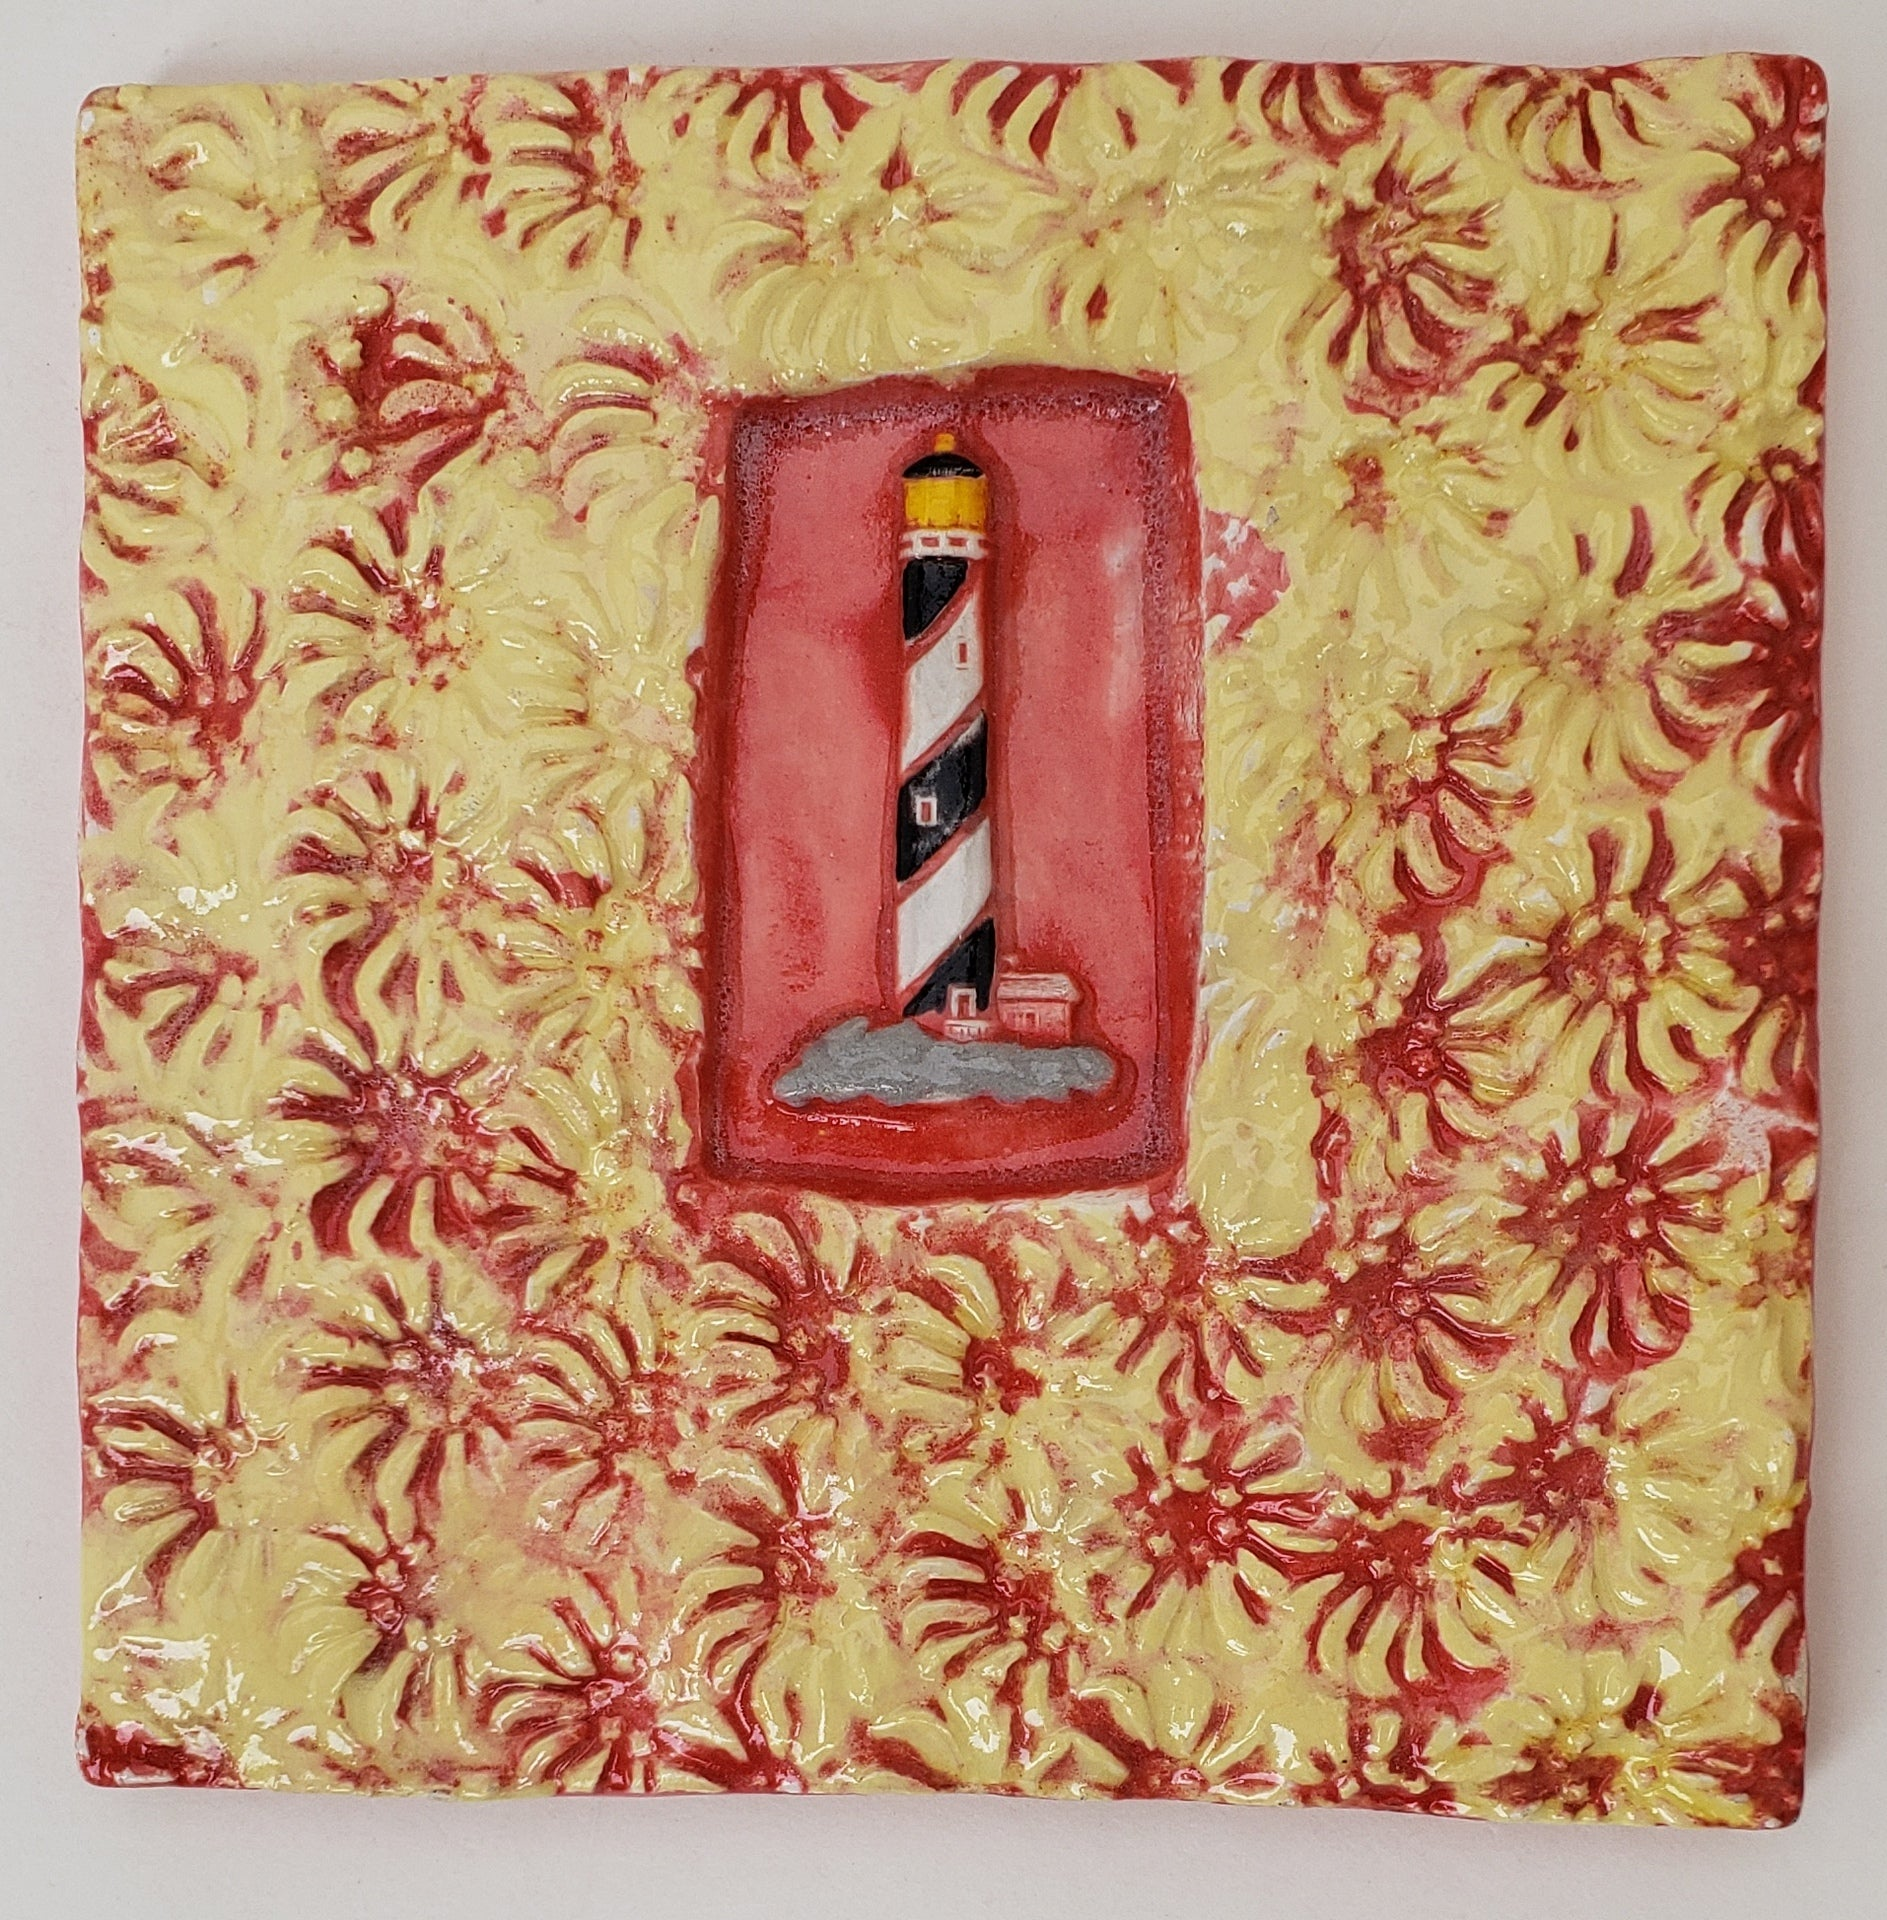 Lighthouse 4x4 Ceramic Tile - Artworks by Karen Fincannon